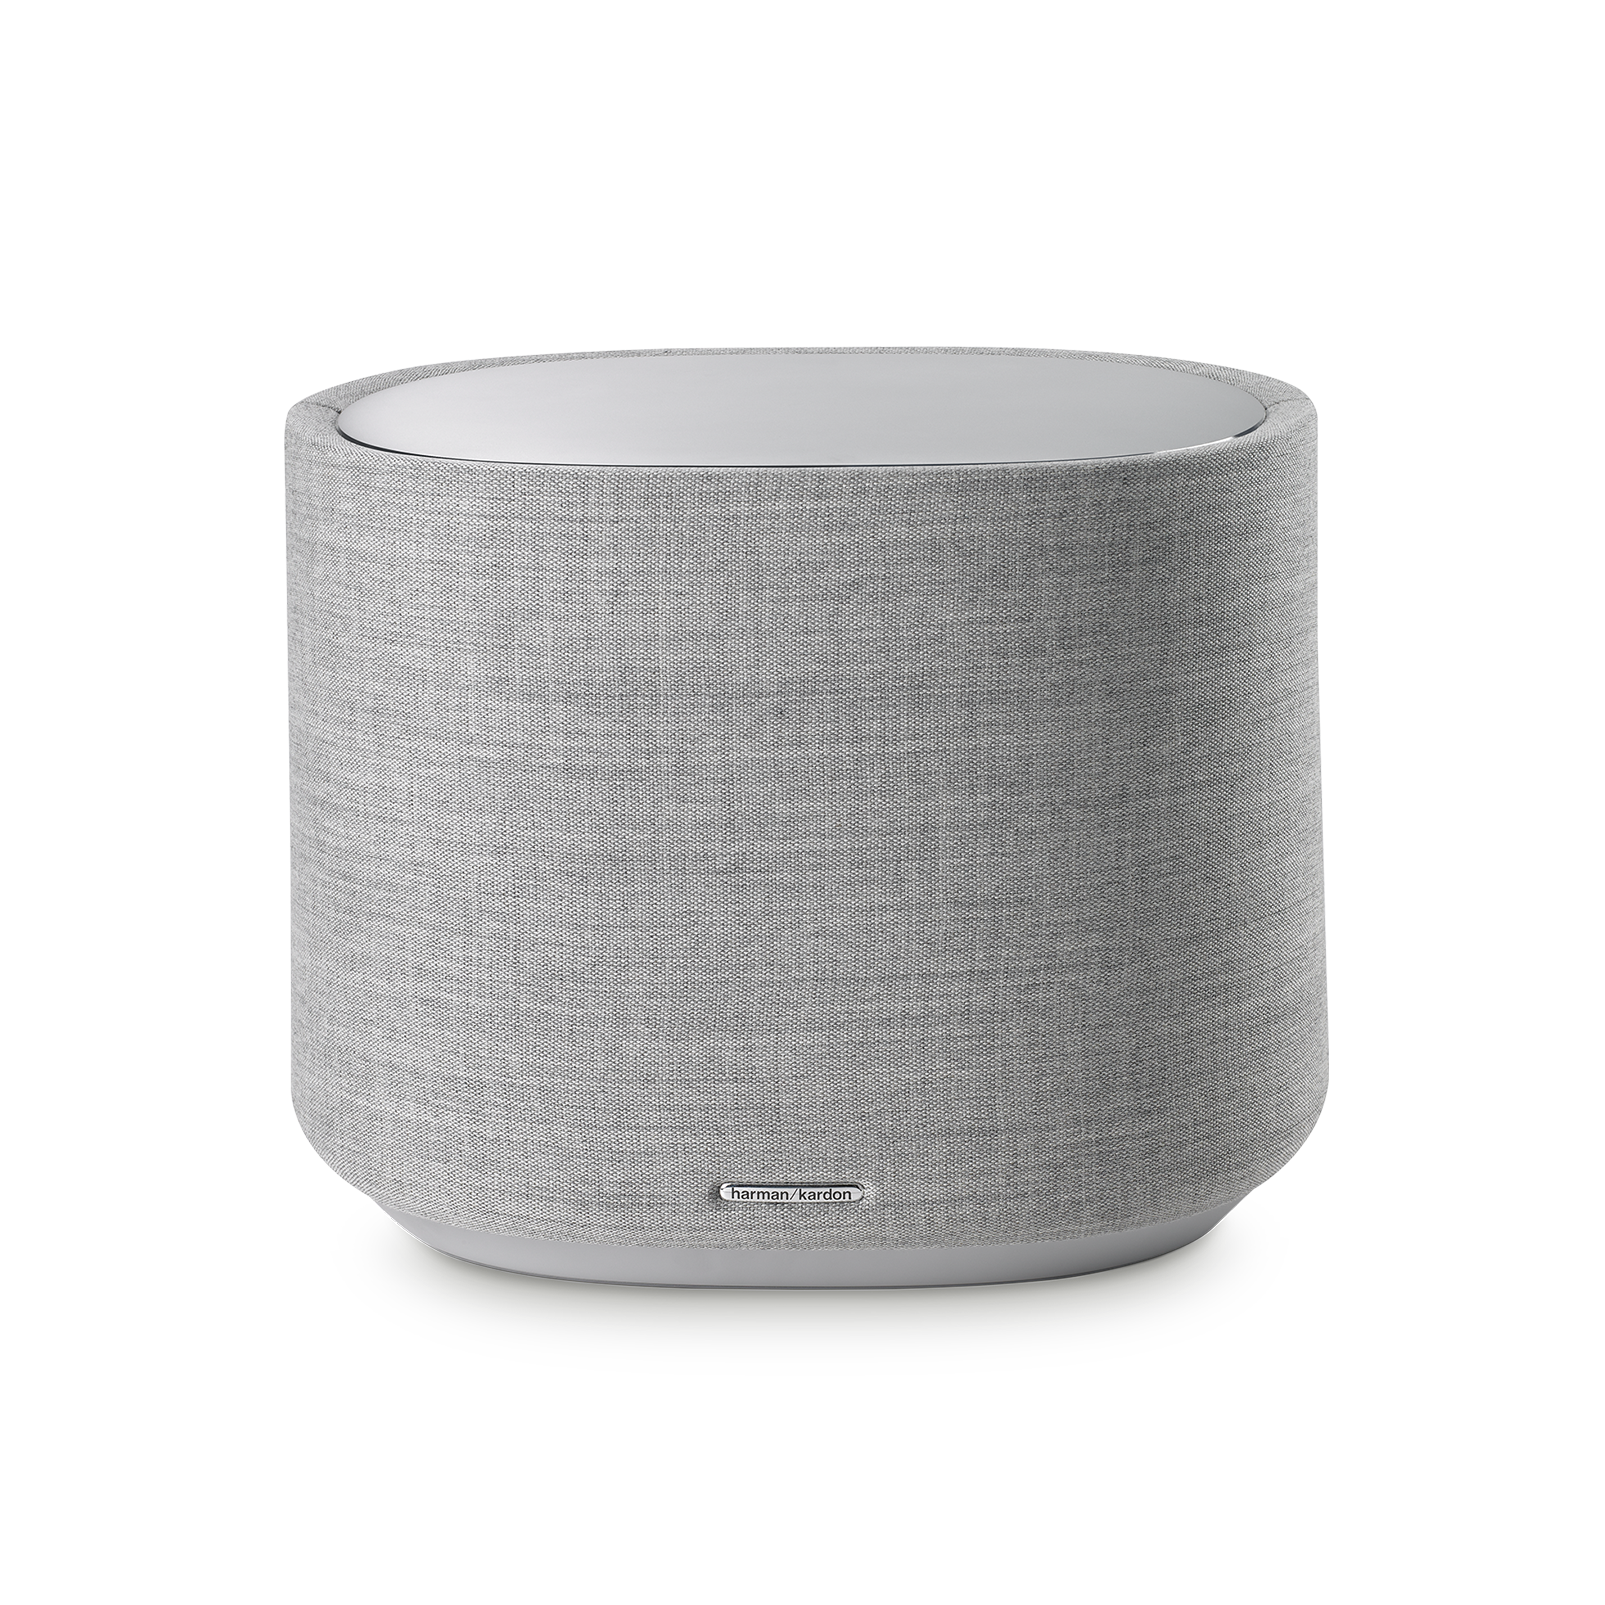 Harman Kardon Citation Sub